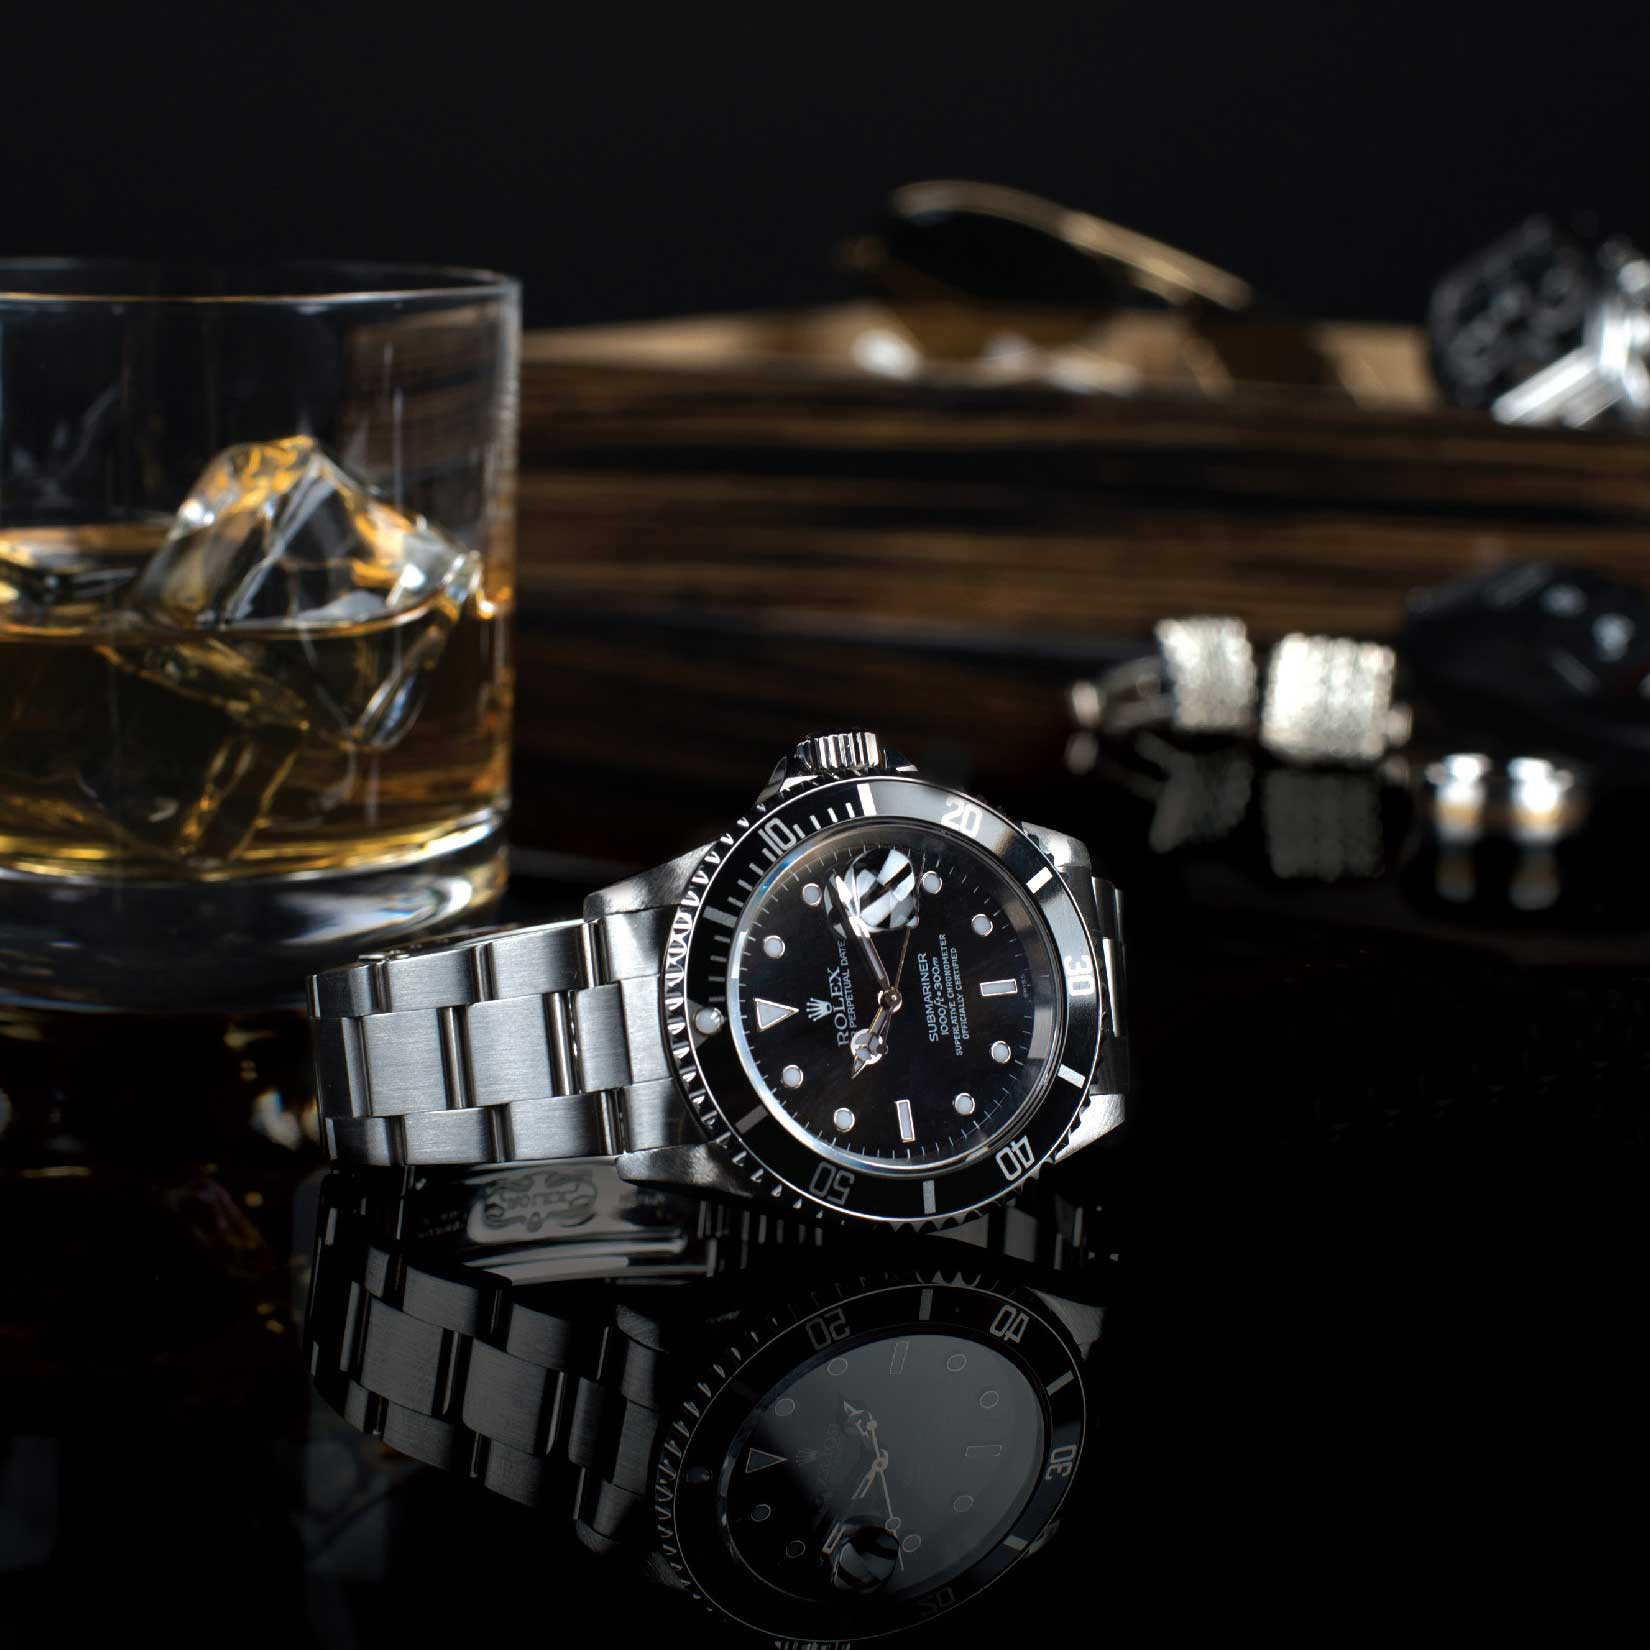 watches barrel original by grain espresso whiskey products